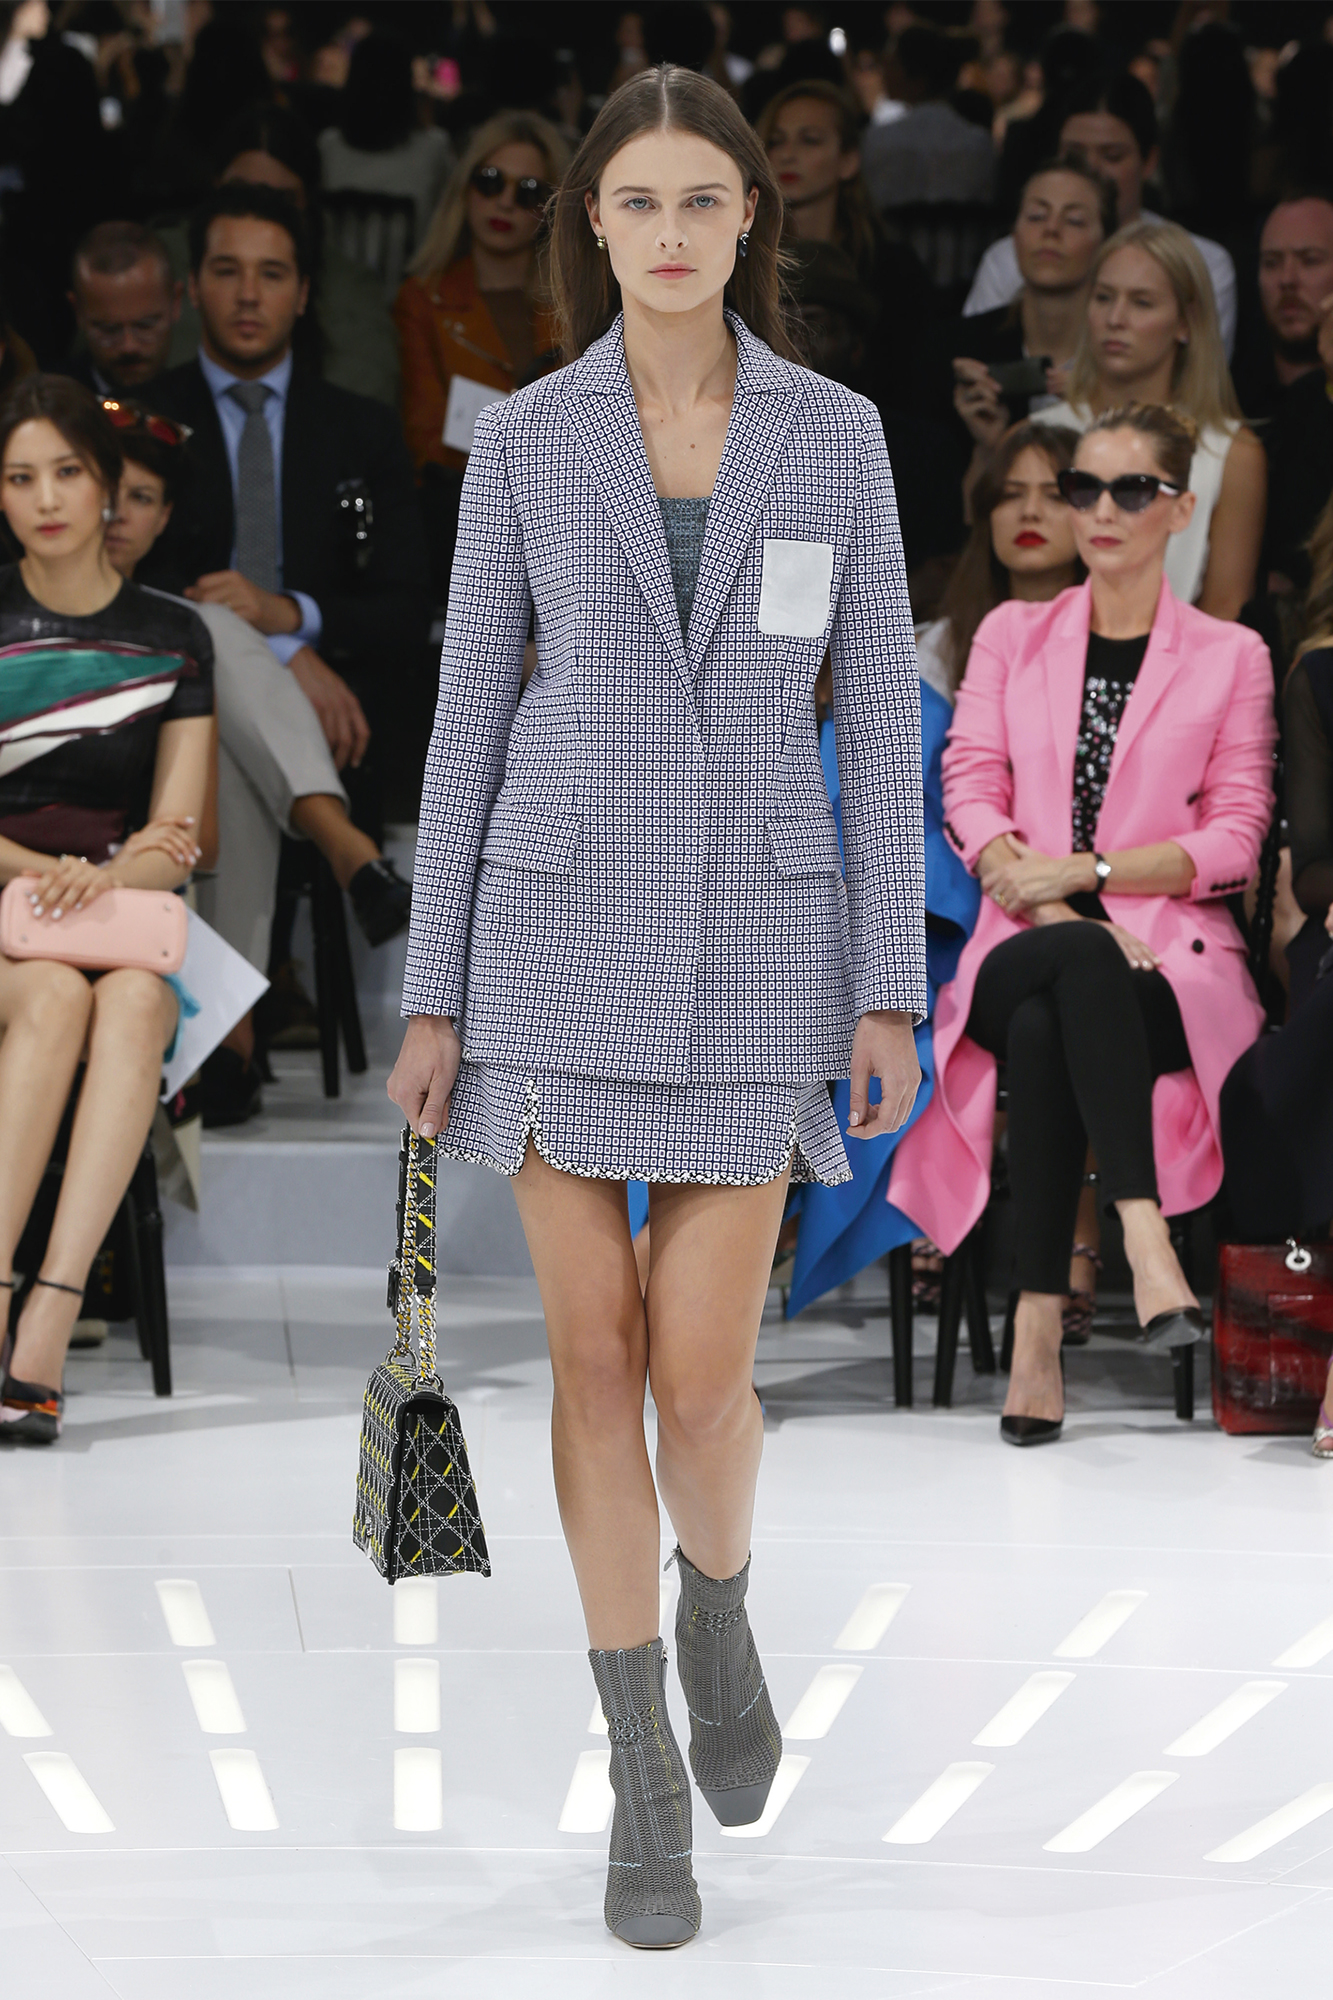 Christian Dior Haute Couture Spring-Summer Ready To Wear Dresses & Accessories Collection 2015-16 (24)